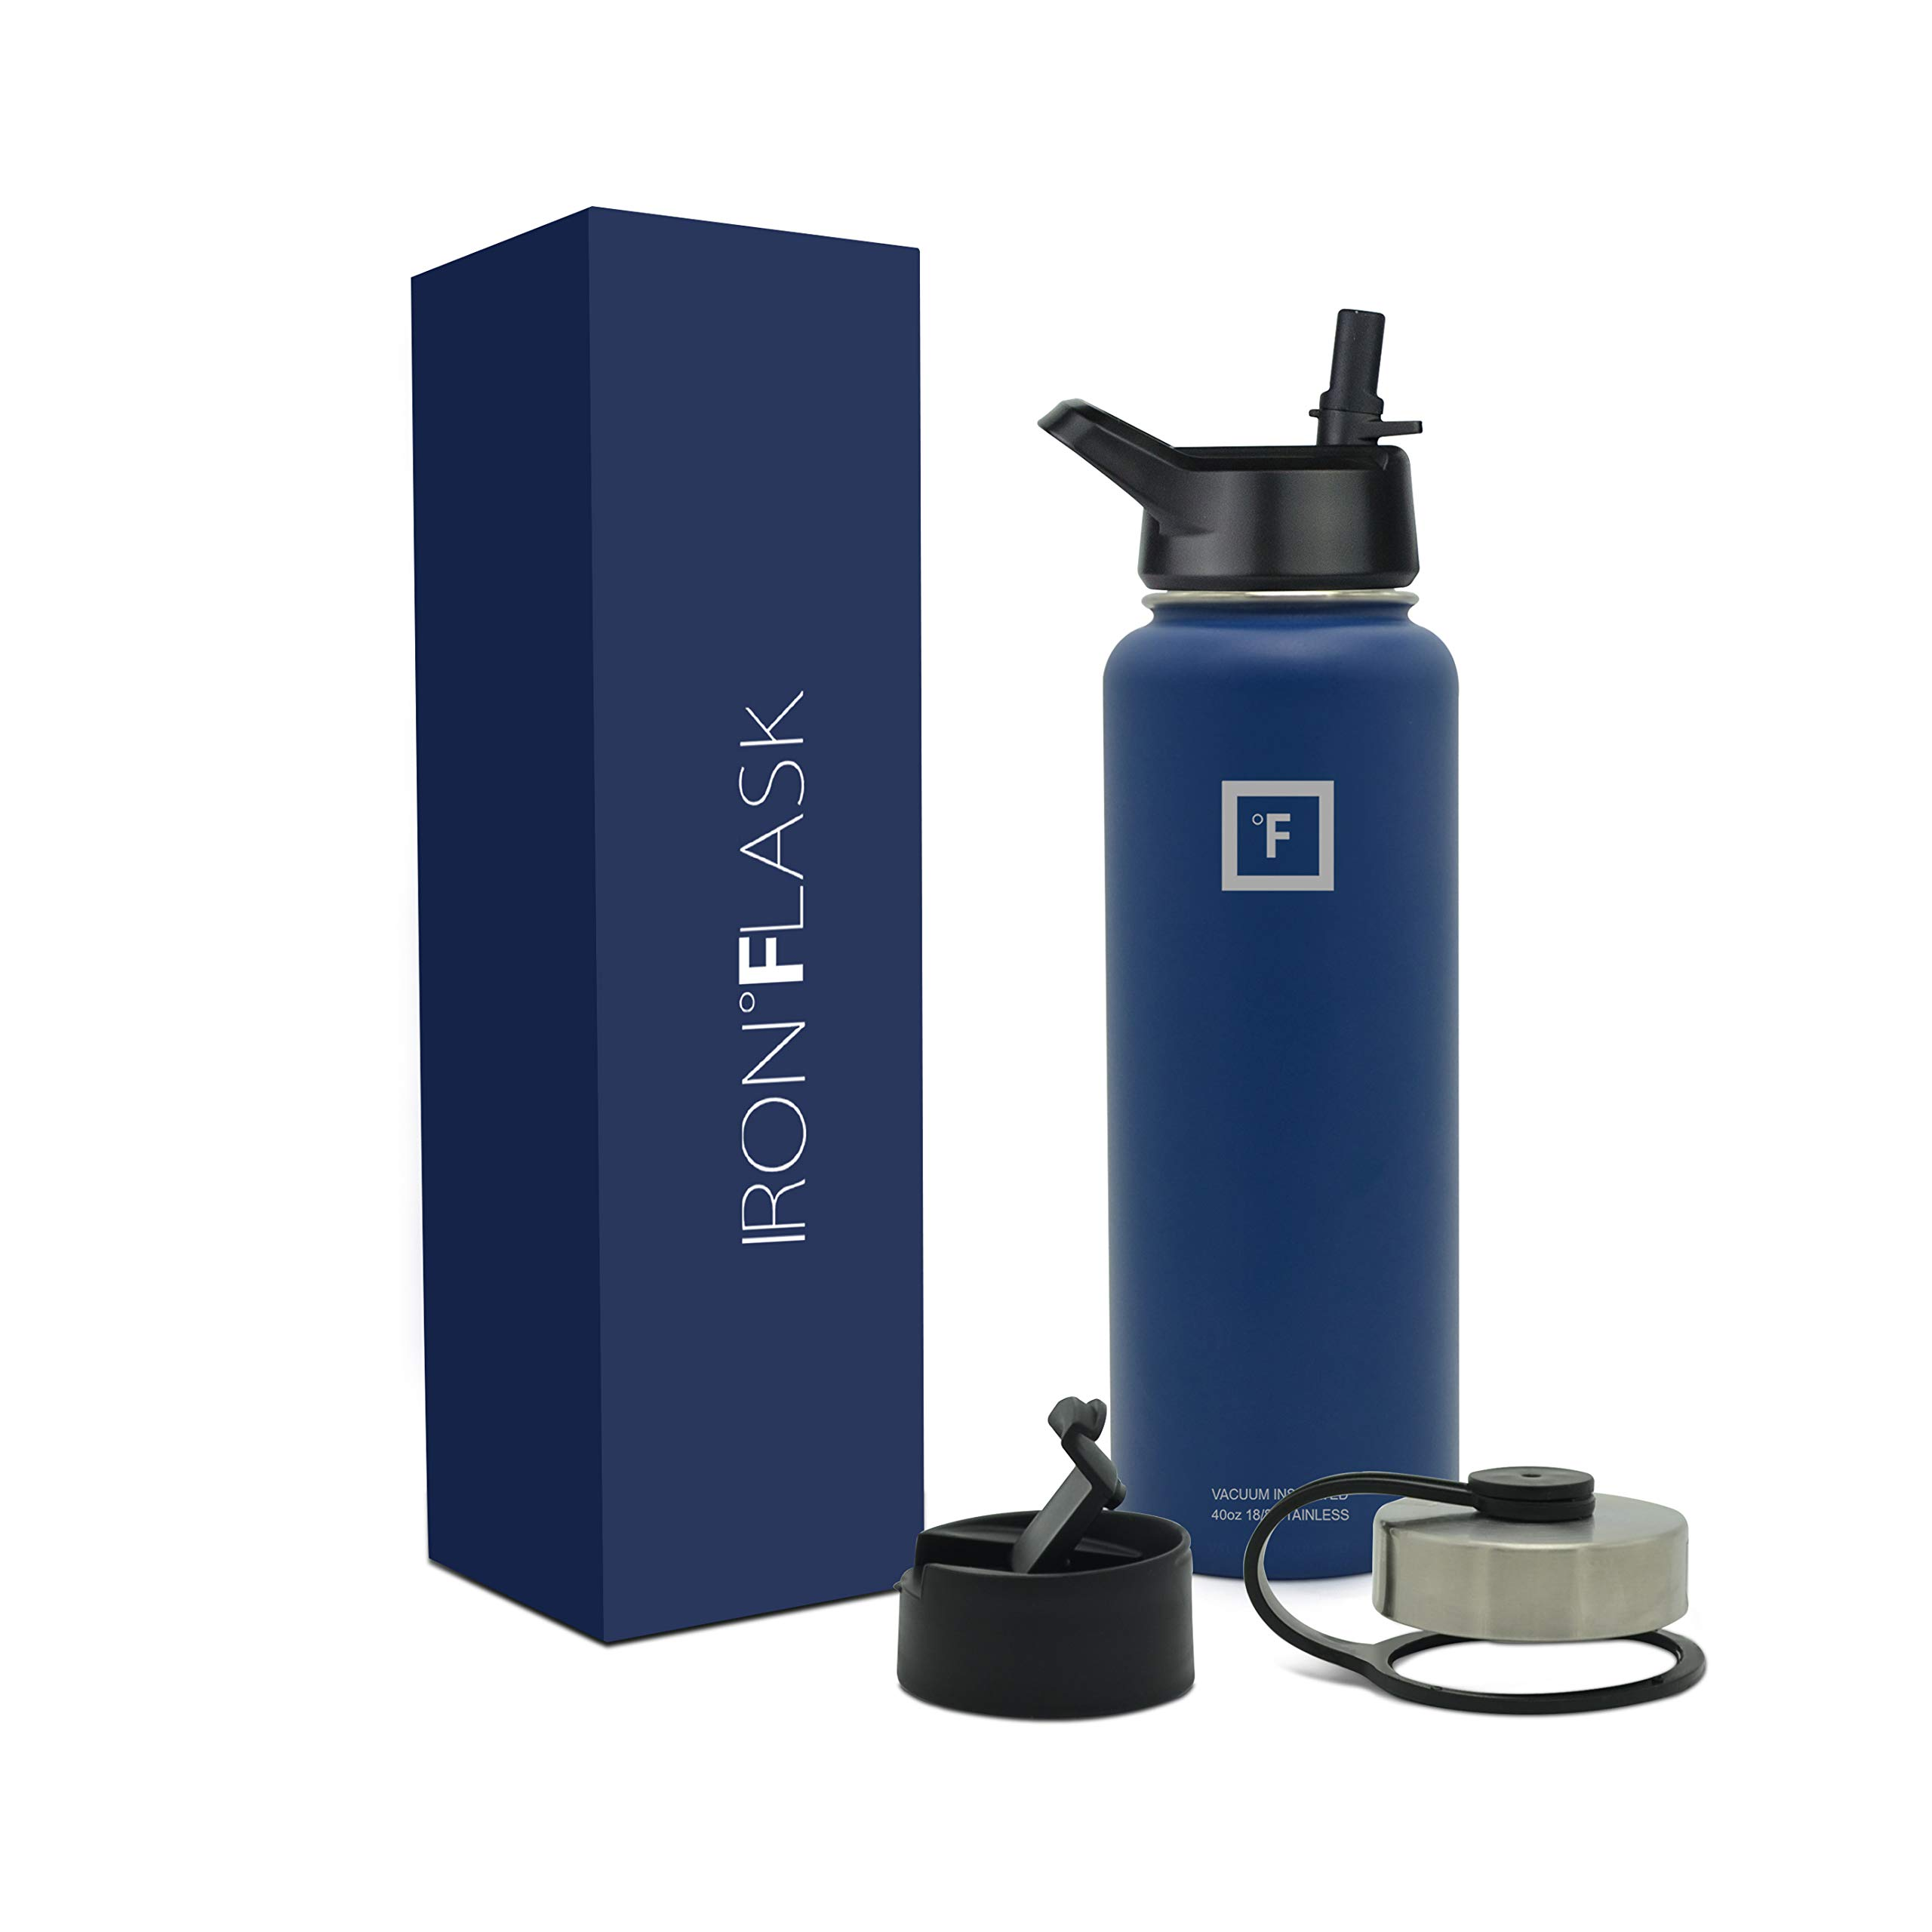 Iron Flask Sports Water Bottle - 40 Oz, 3 Lids, Vacuum Insulated Stainless Steel, Hot & Cold, Wide Mouth, Double Walled, Hydro Metal Canteen, TWI Blue